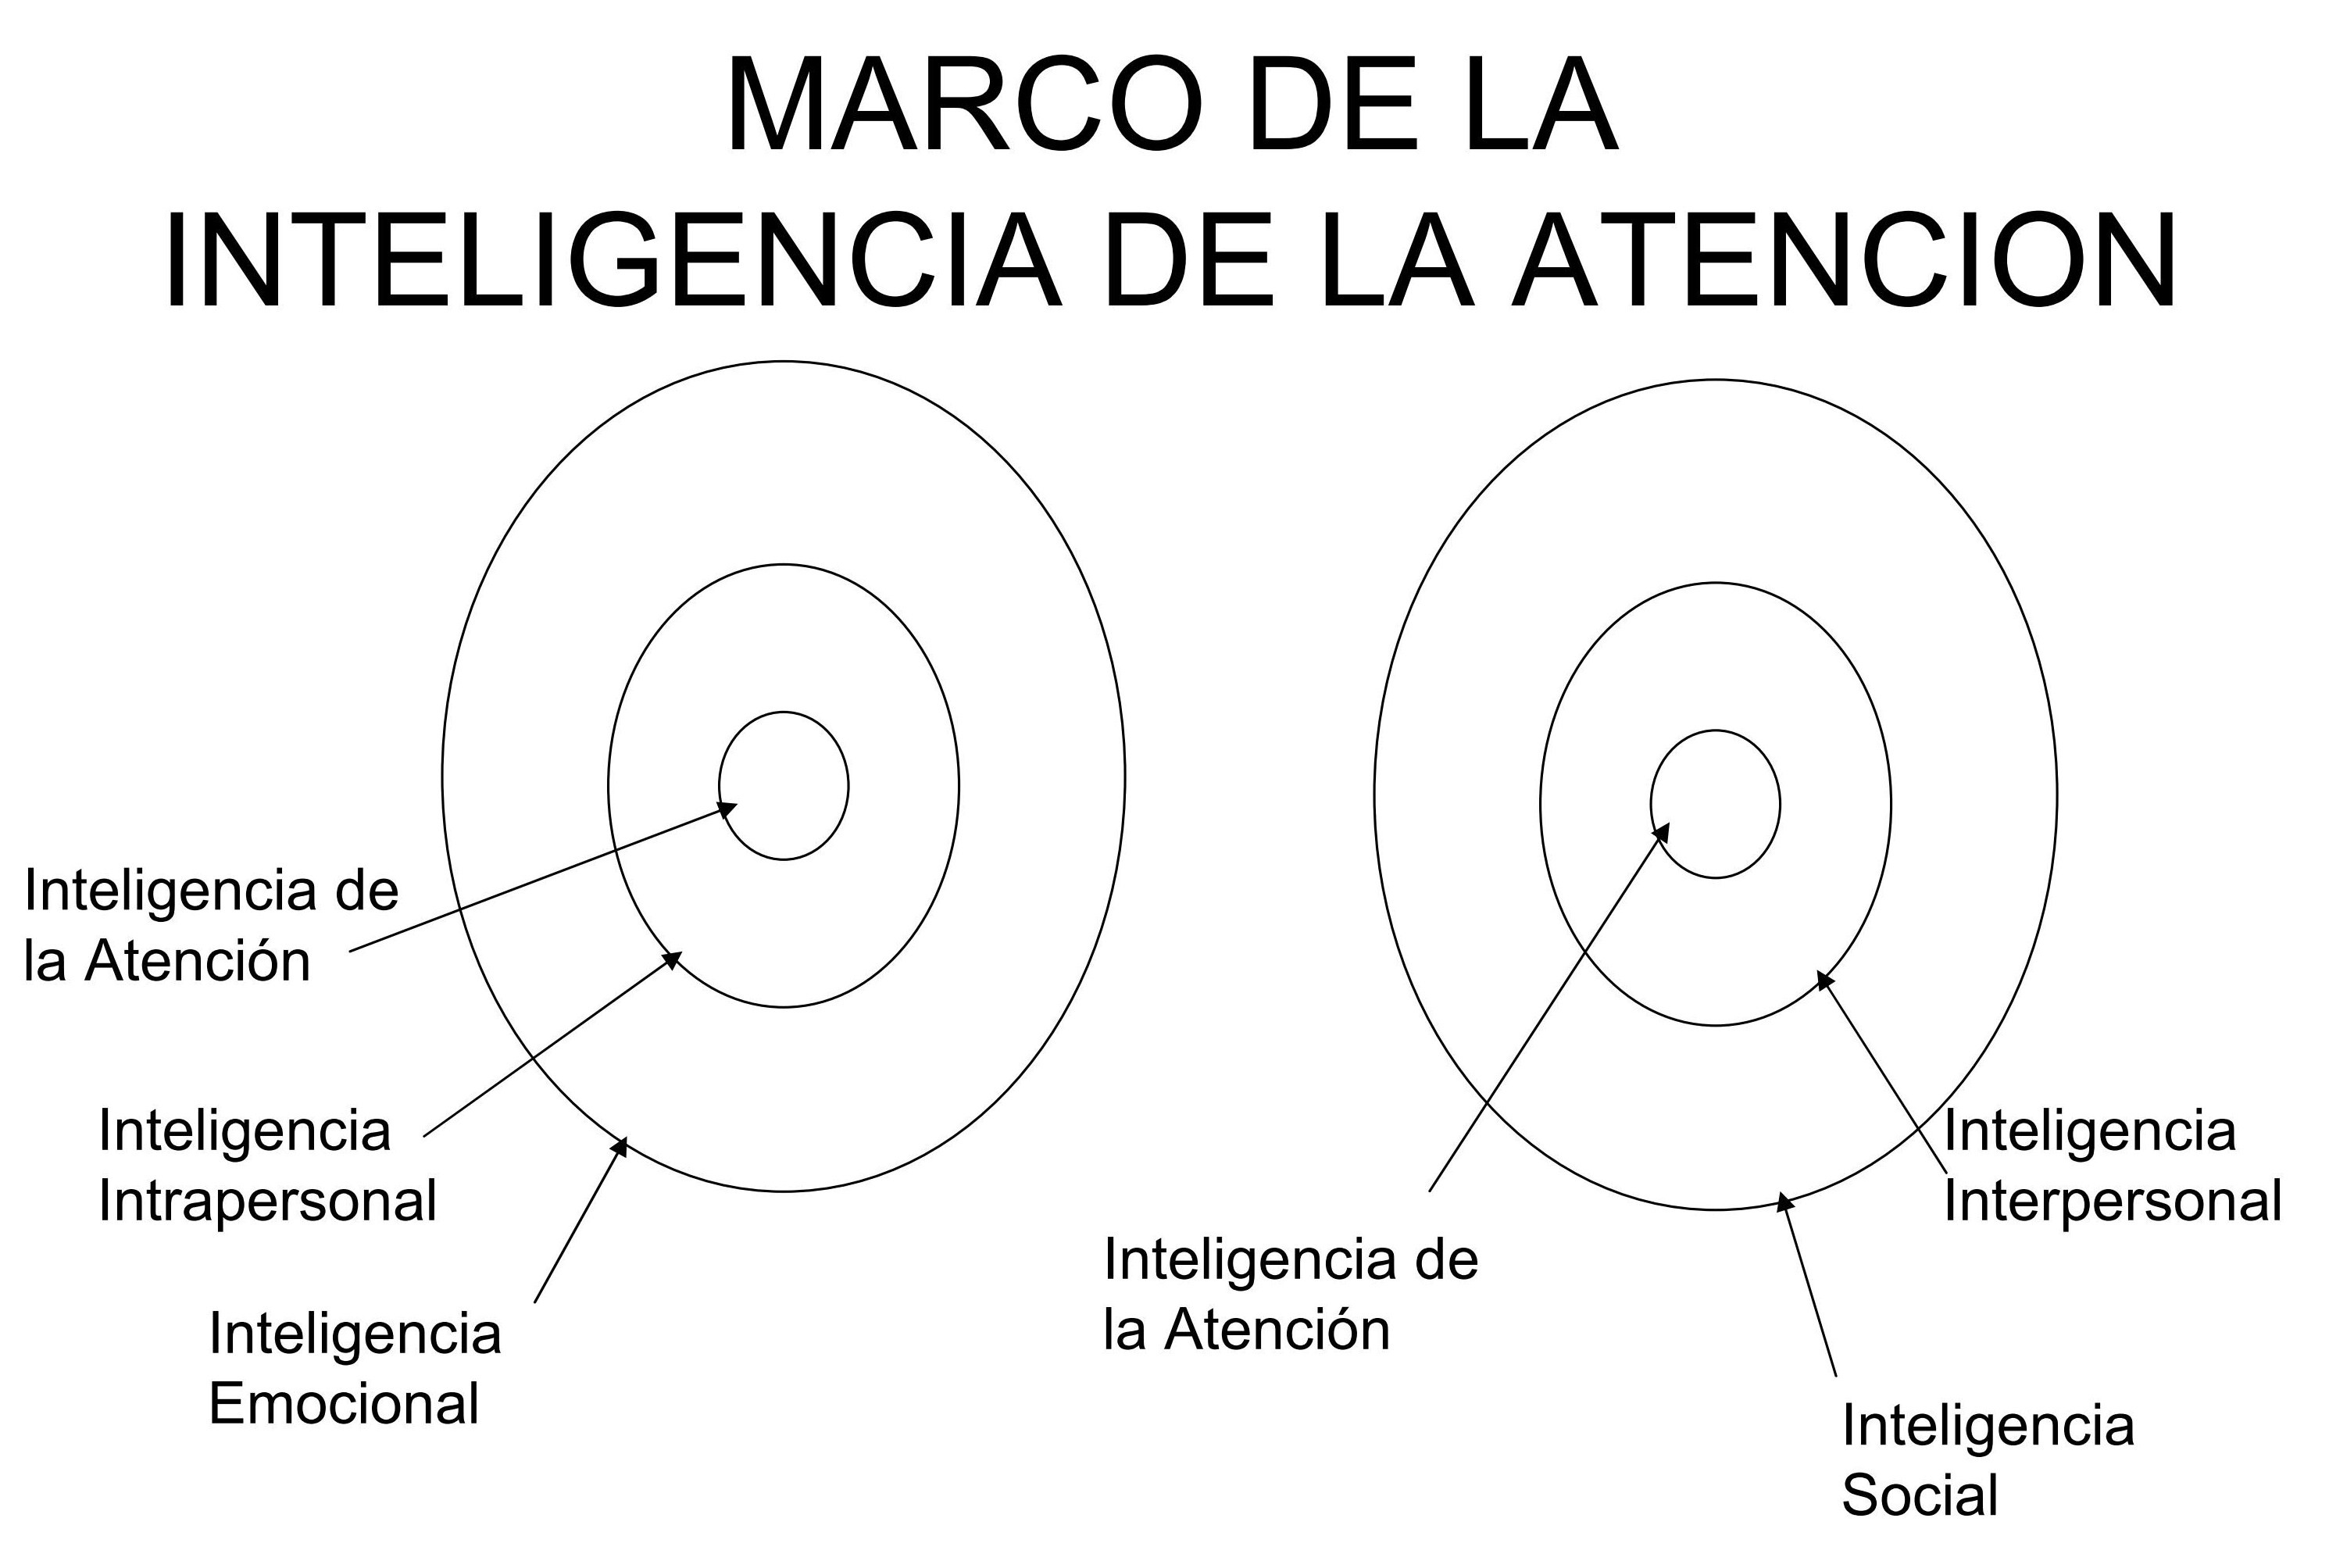 MARCO_INTELIGENCIA_ATENCION